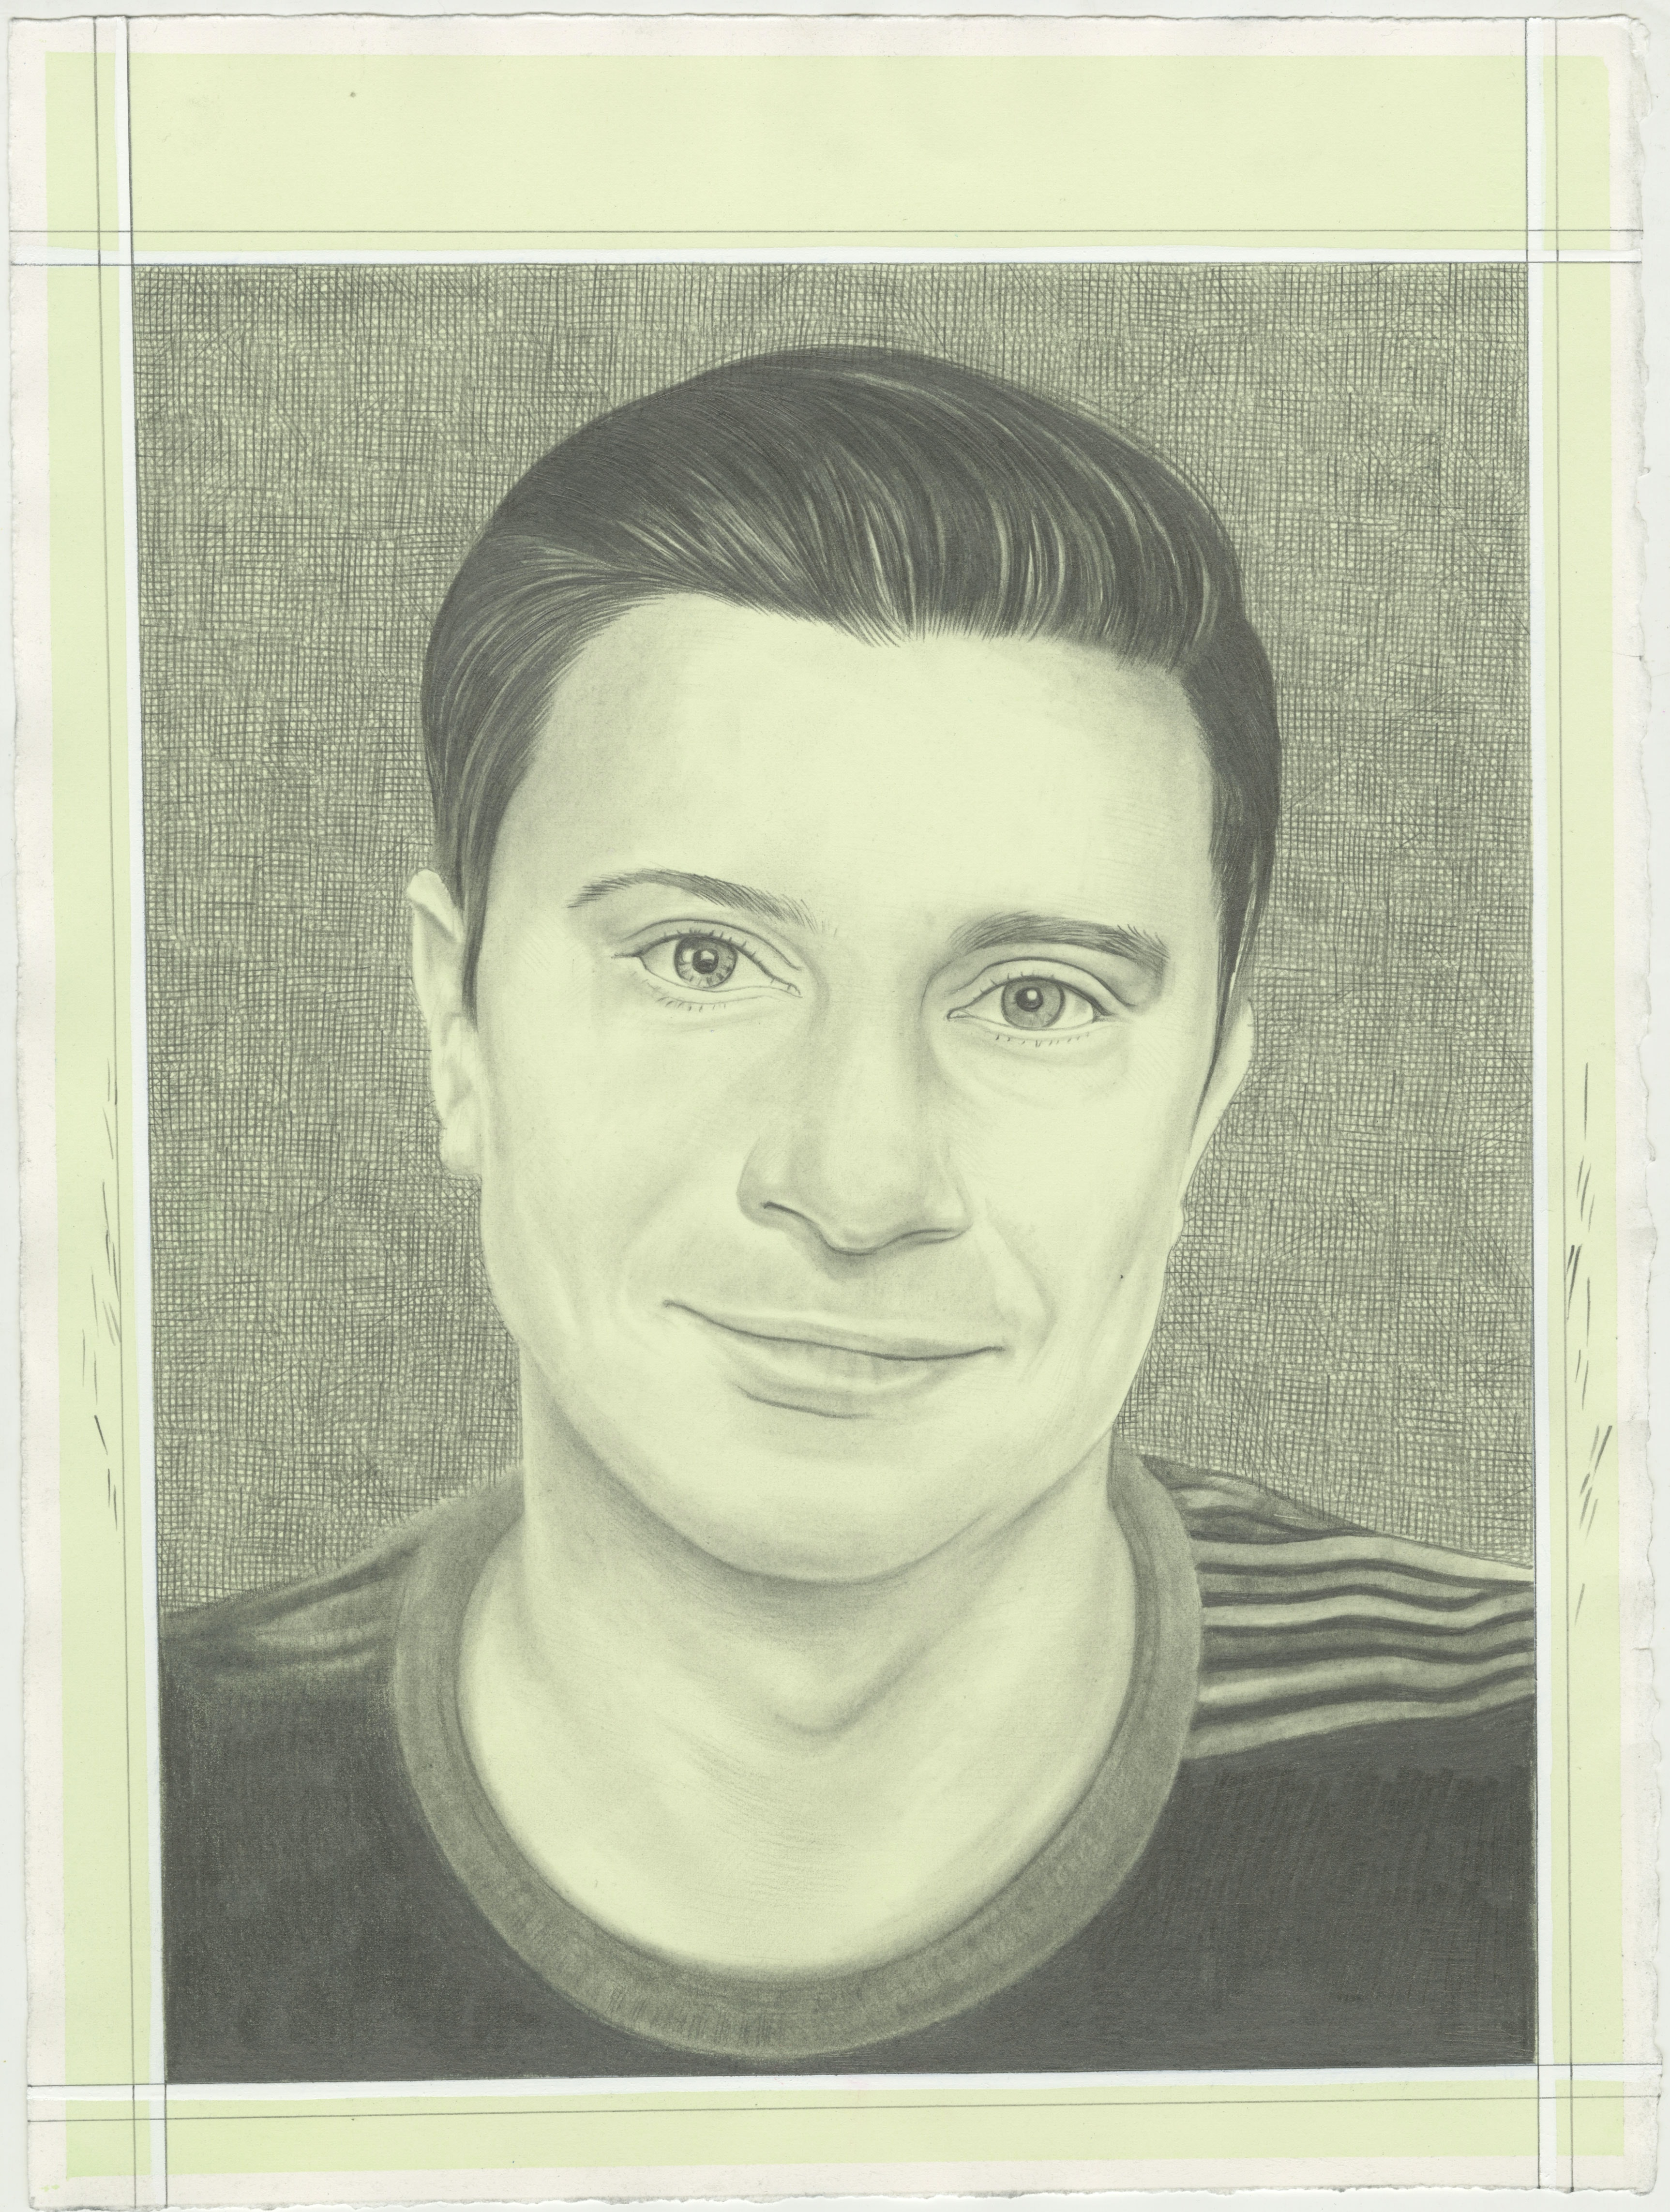 Portrait of Will Fenstermaker, pencil on paper by Phong H. Bui.